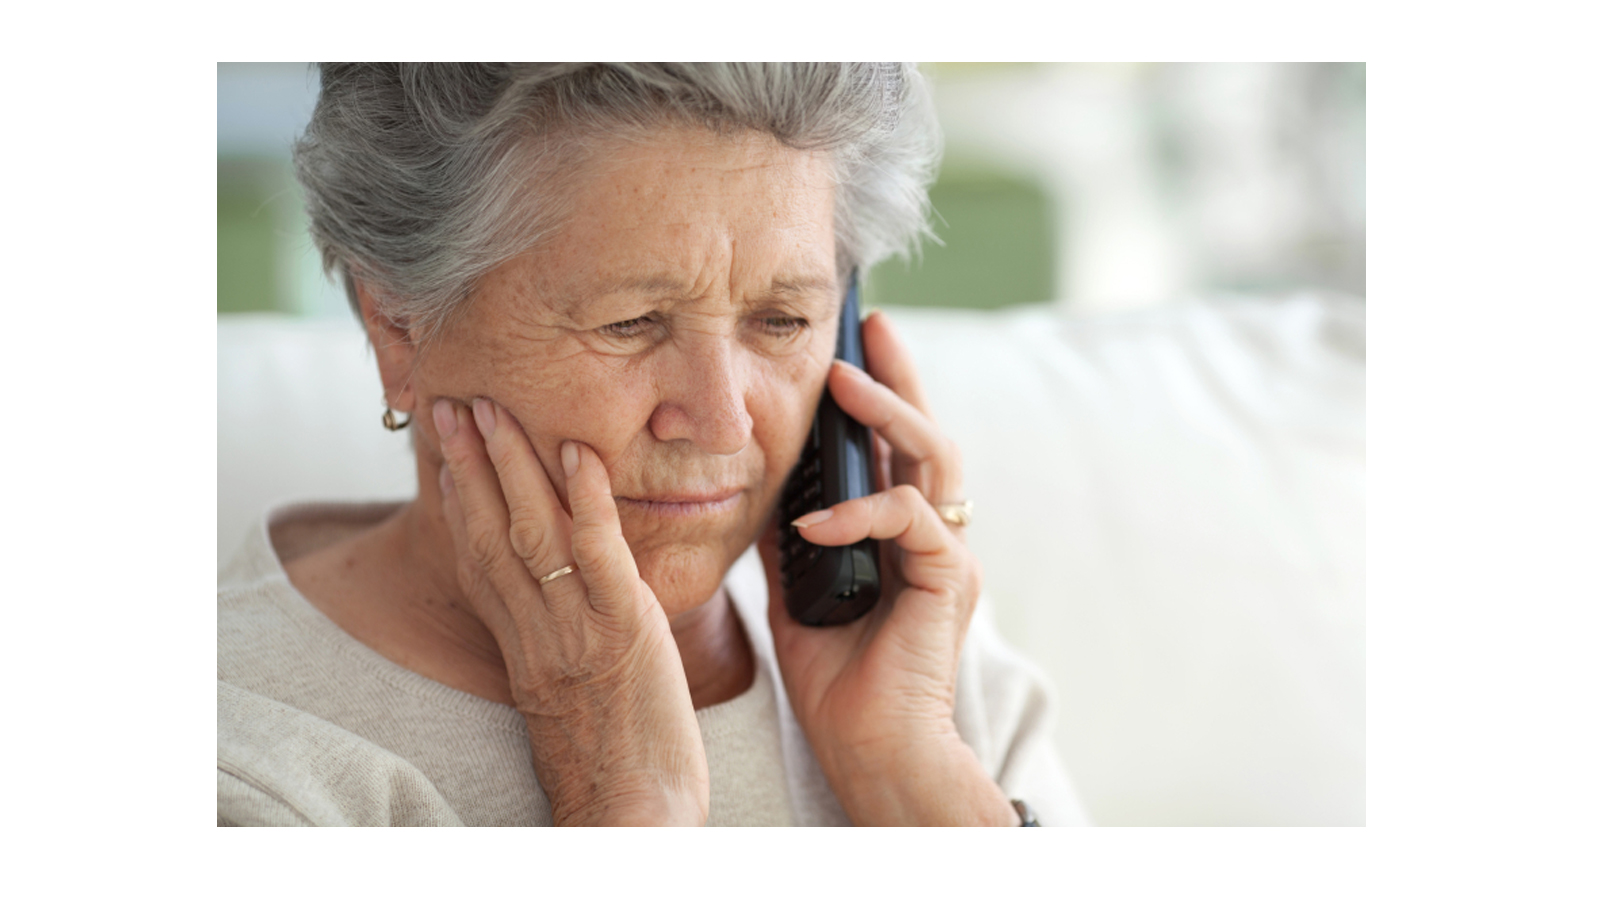 aging woman on phone